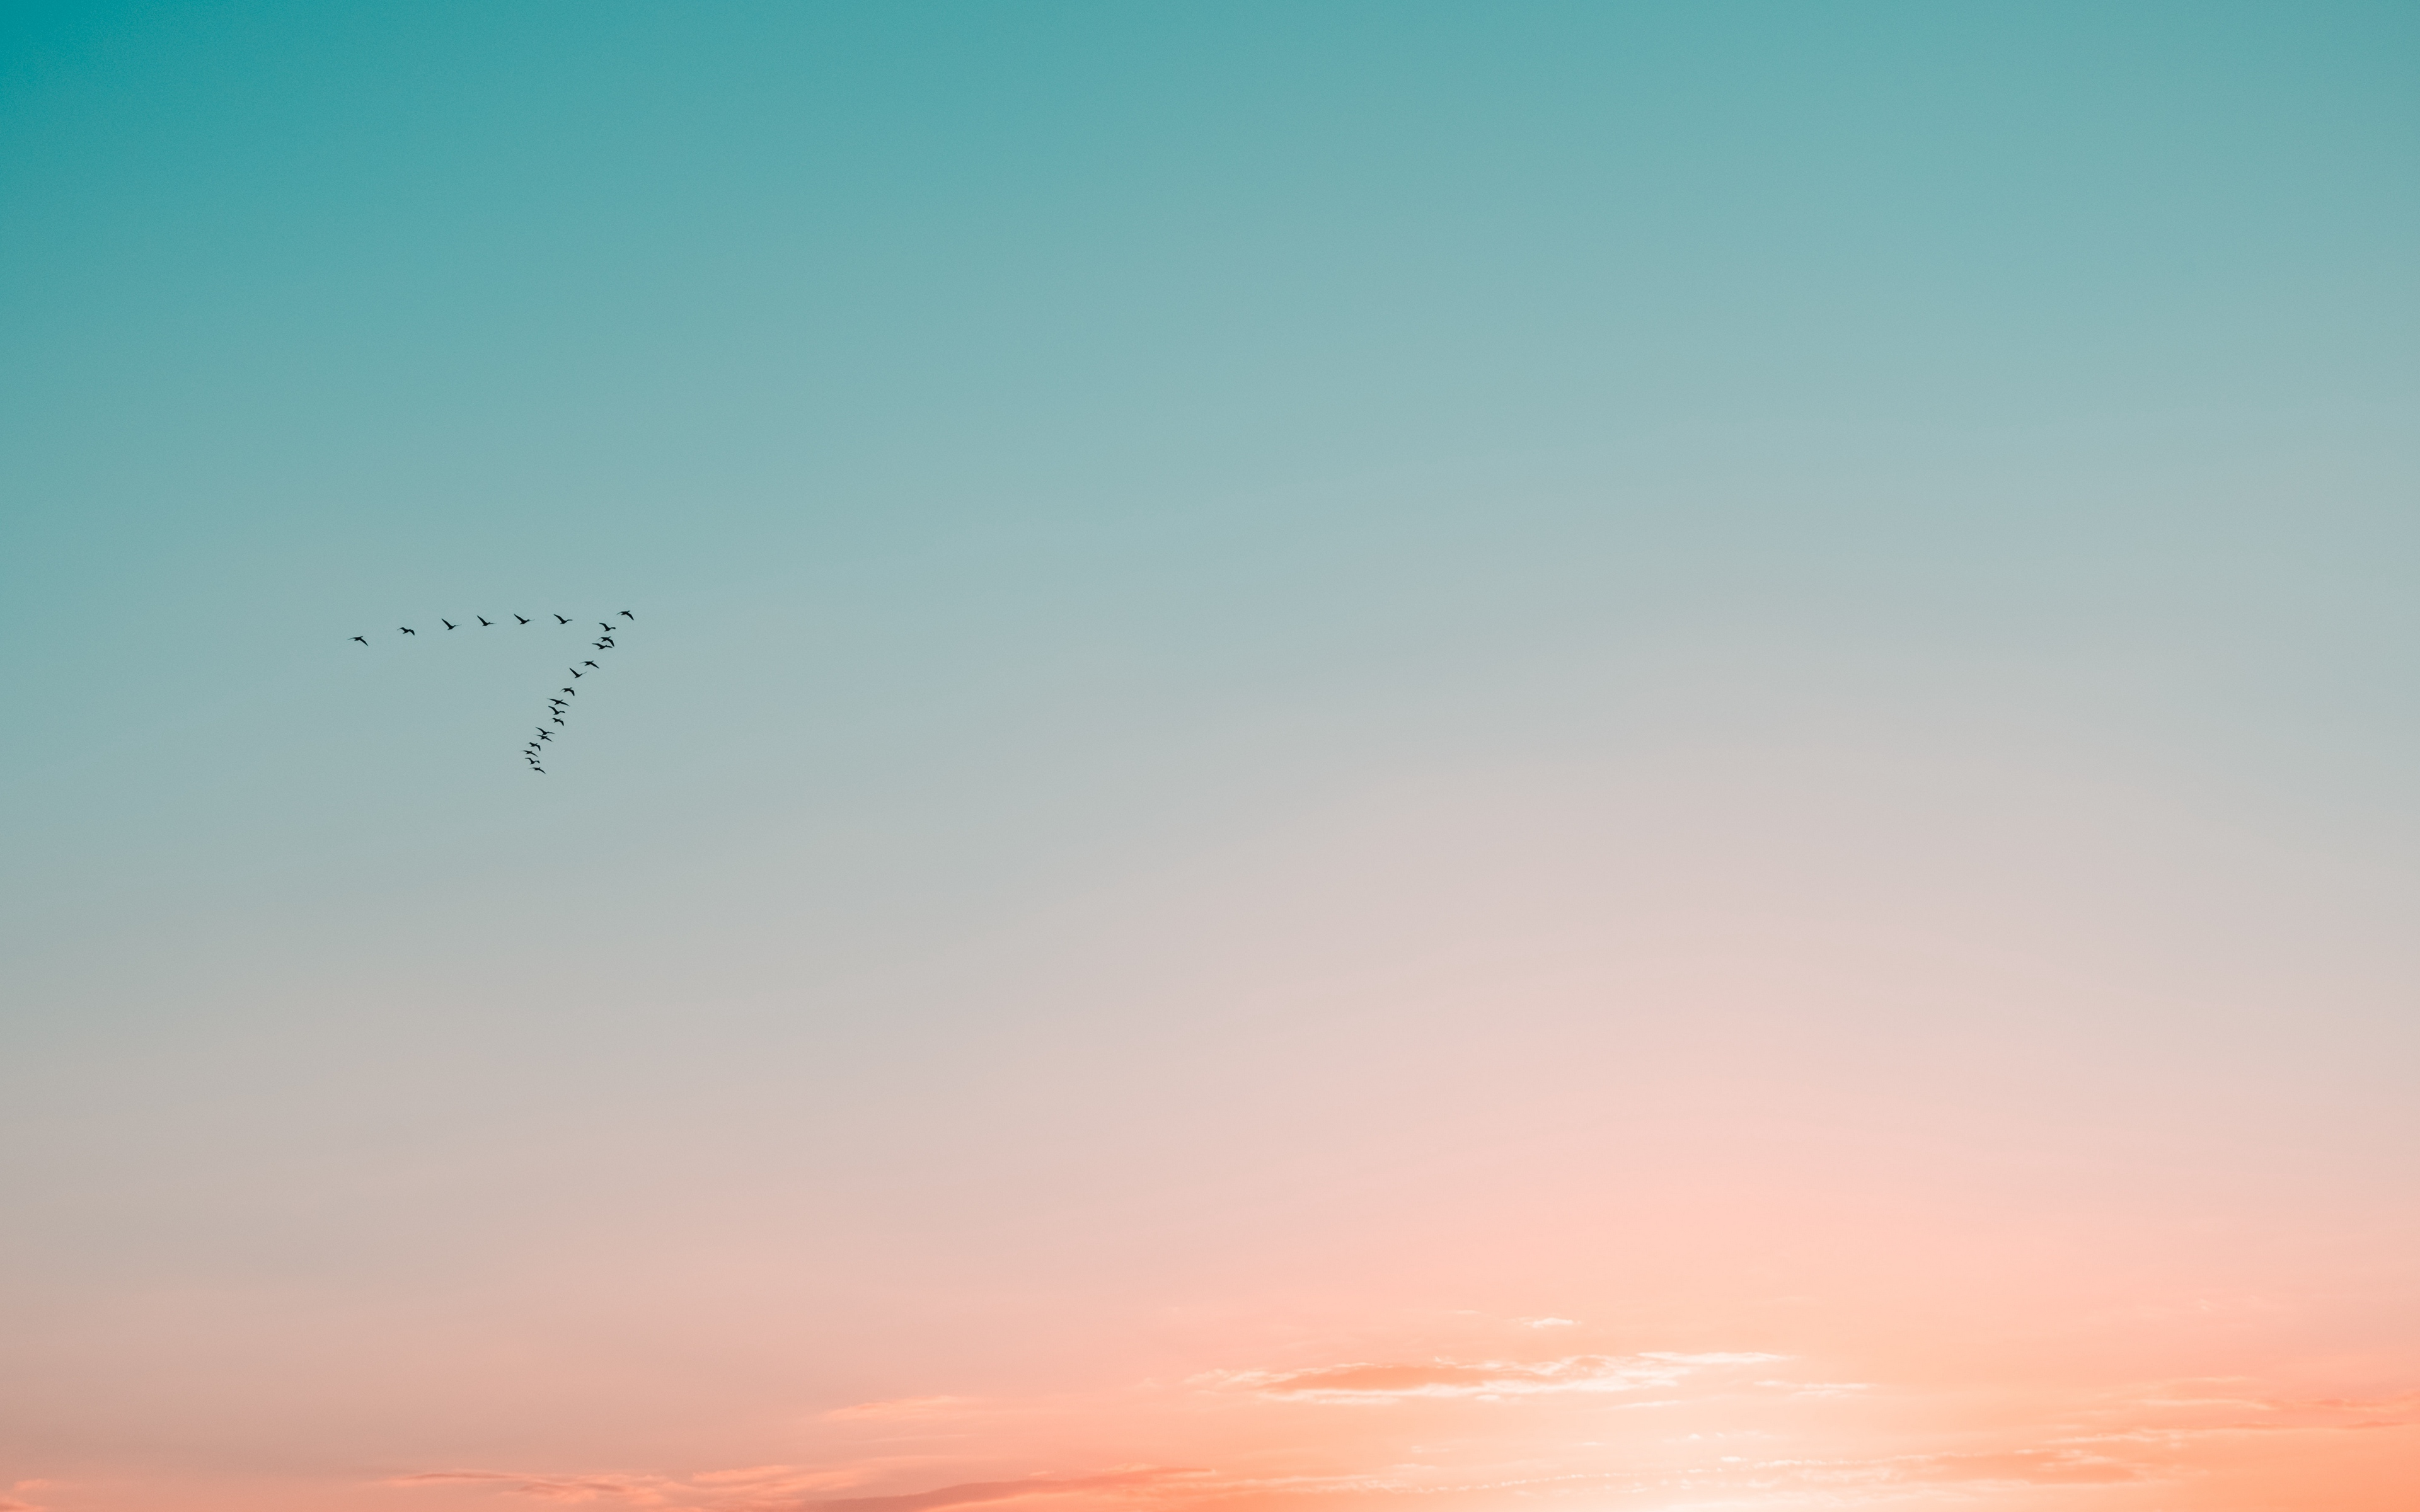 Pastel Hd Wallpaper Posted By Michelle Simpson